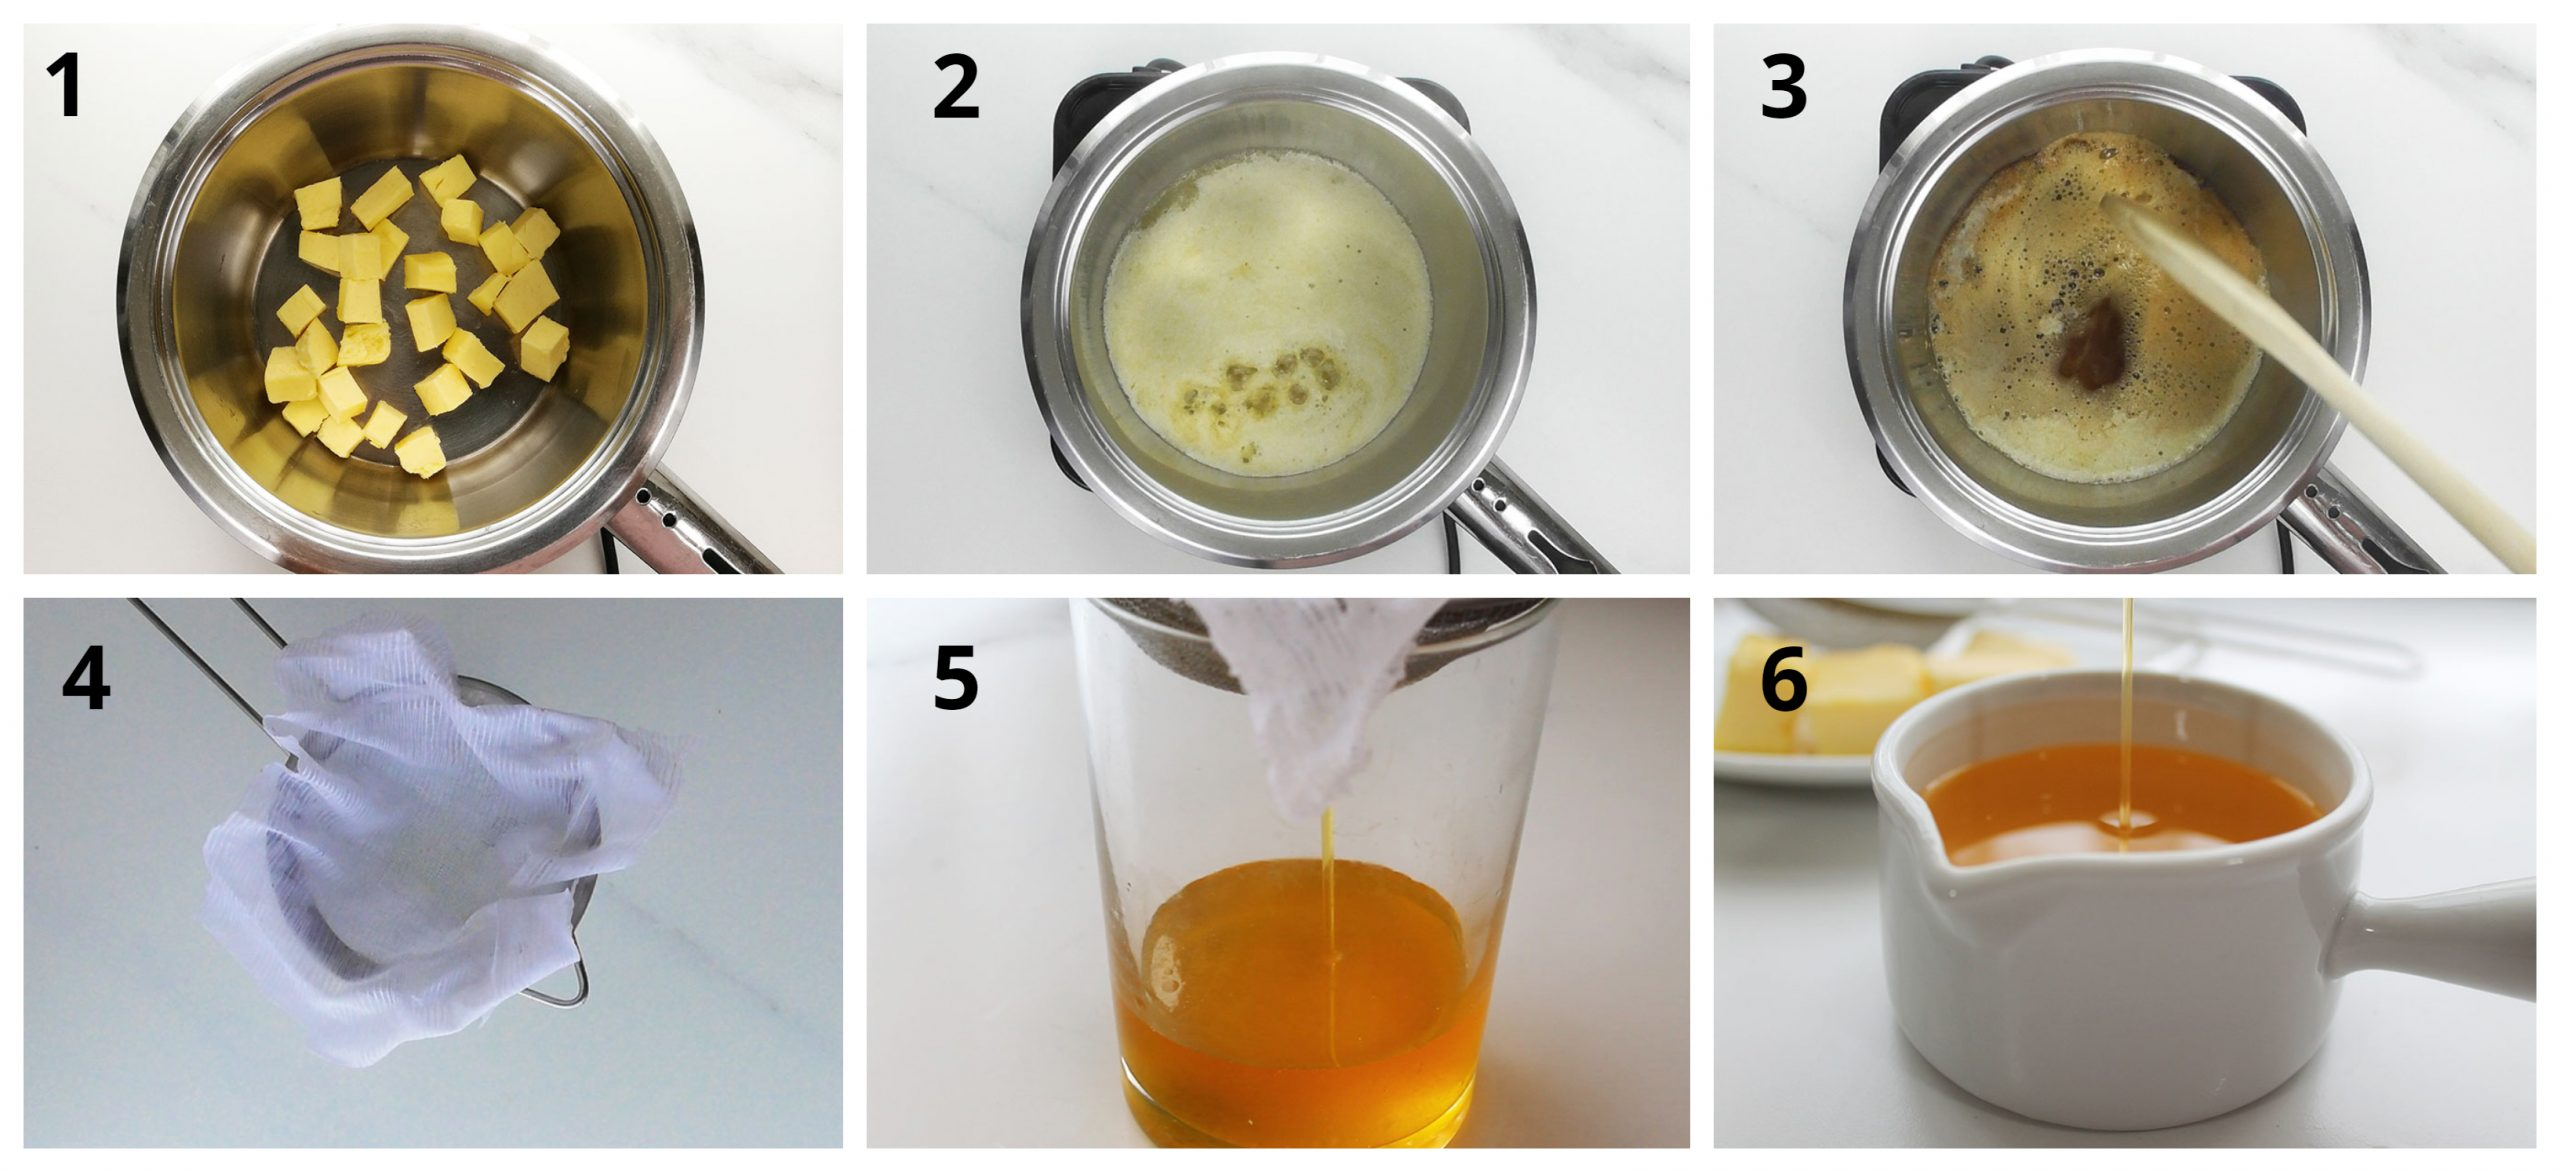 A quick step by step to make clarified butter